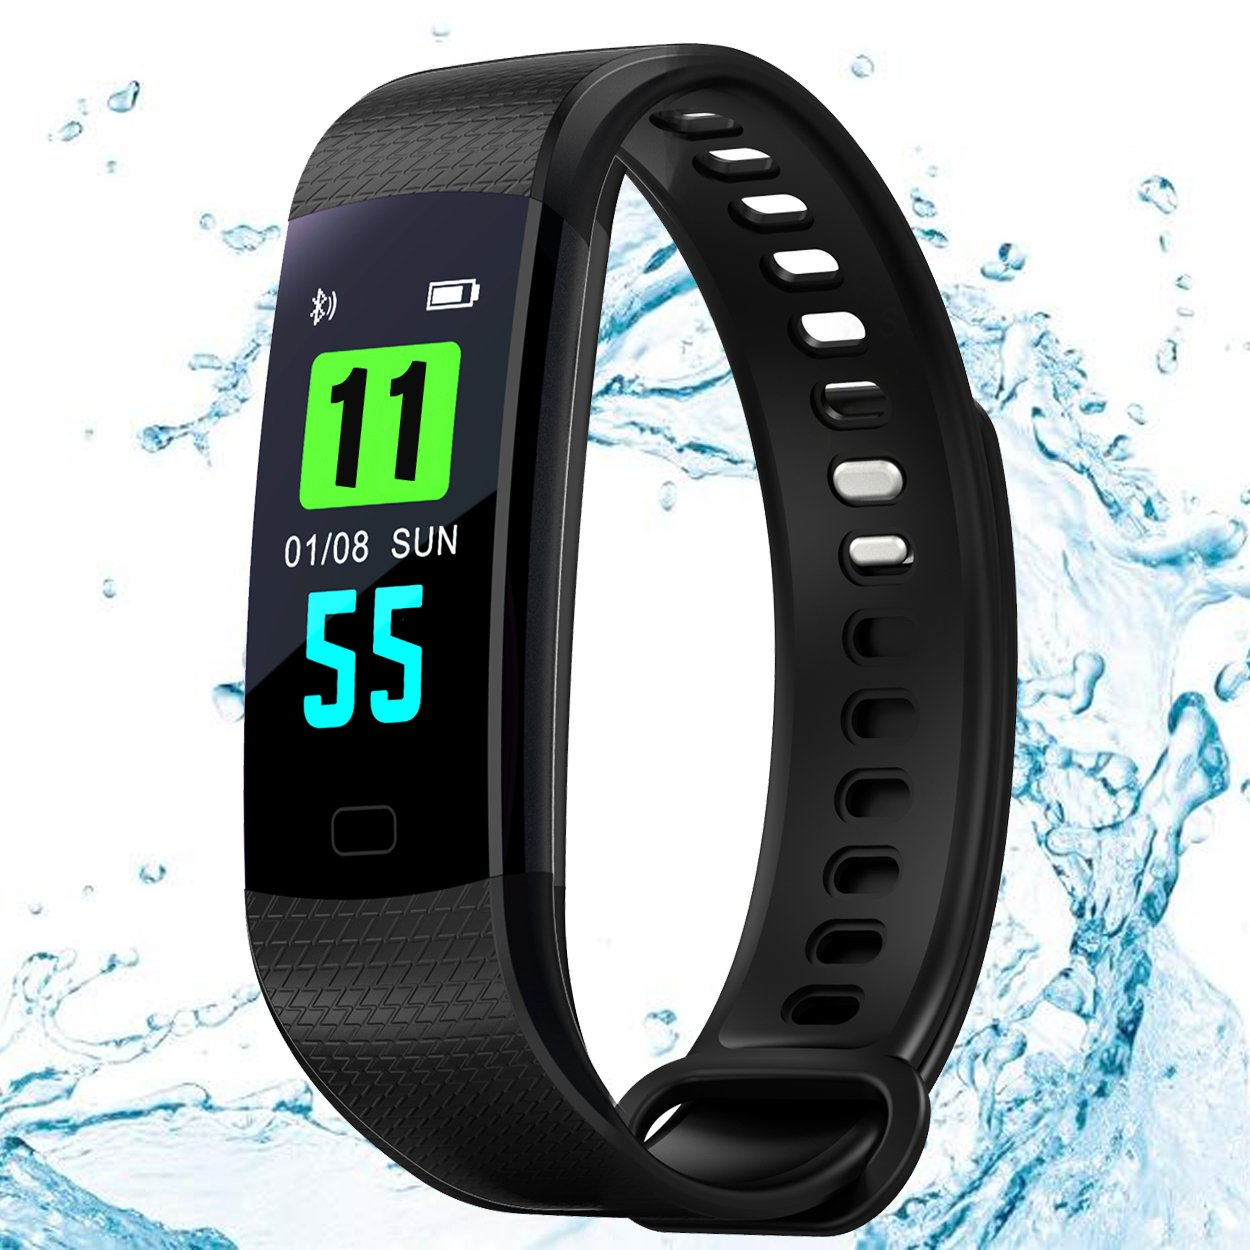 Fitness Tracker Bands Color Display IP 67 Waterproof,Smart Wristband Bracelet with Sleep,Heart Rate Monitoring Watch Pedometer Calorie Calculation,Bluetooth 4.0 for Android iOS